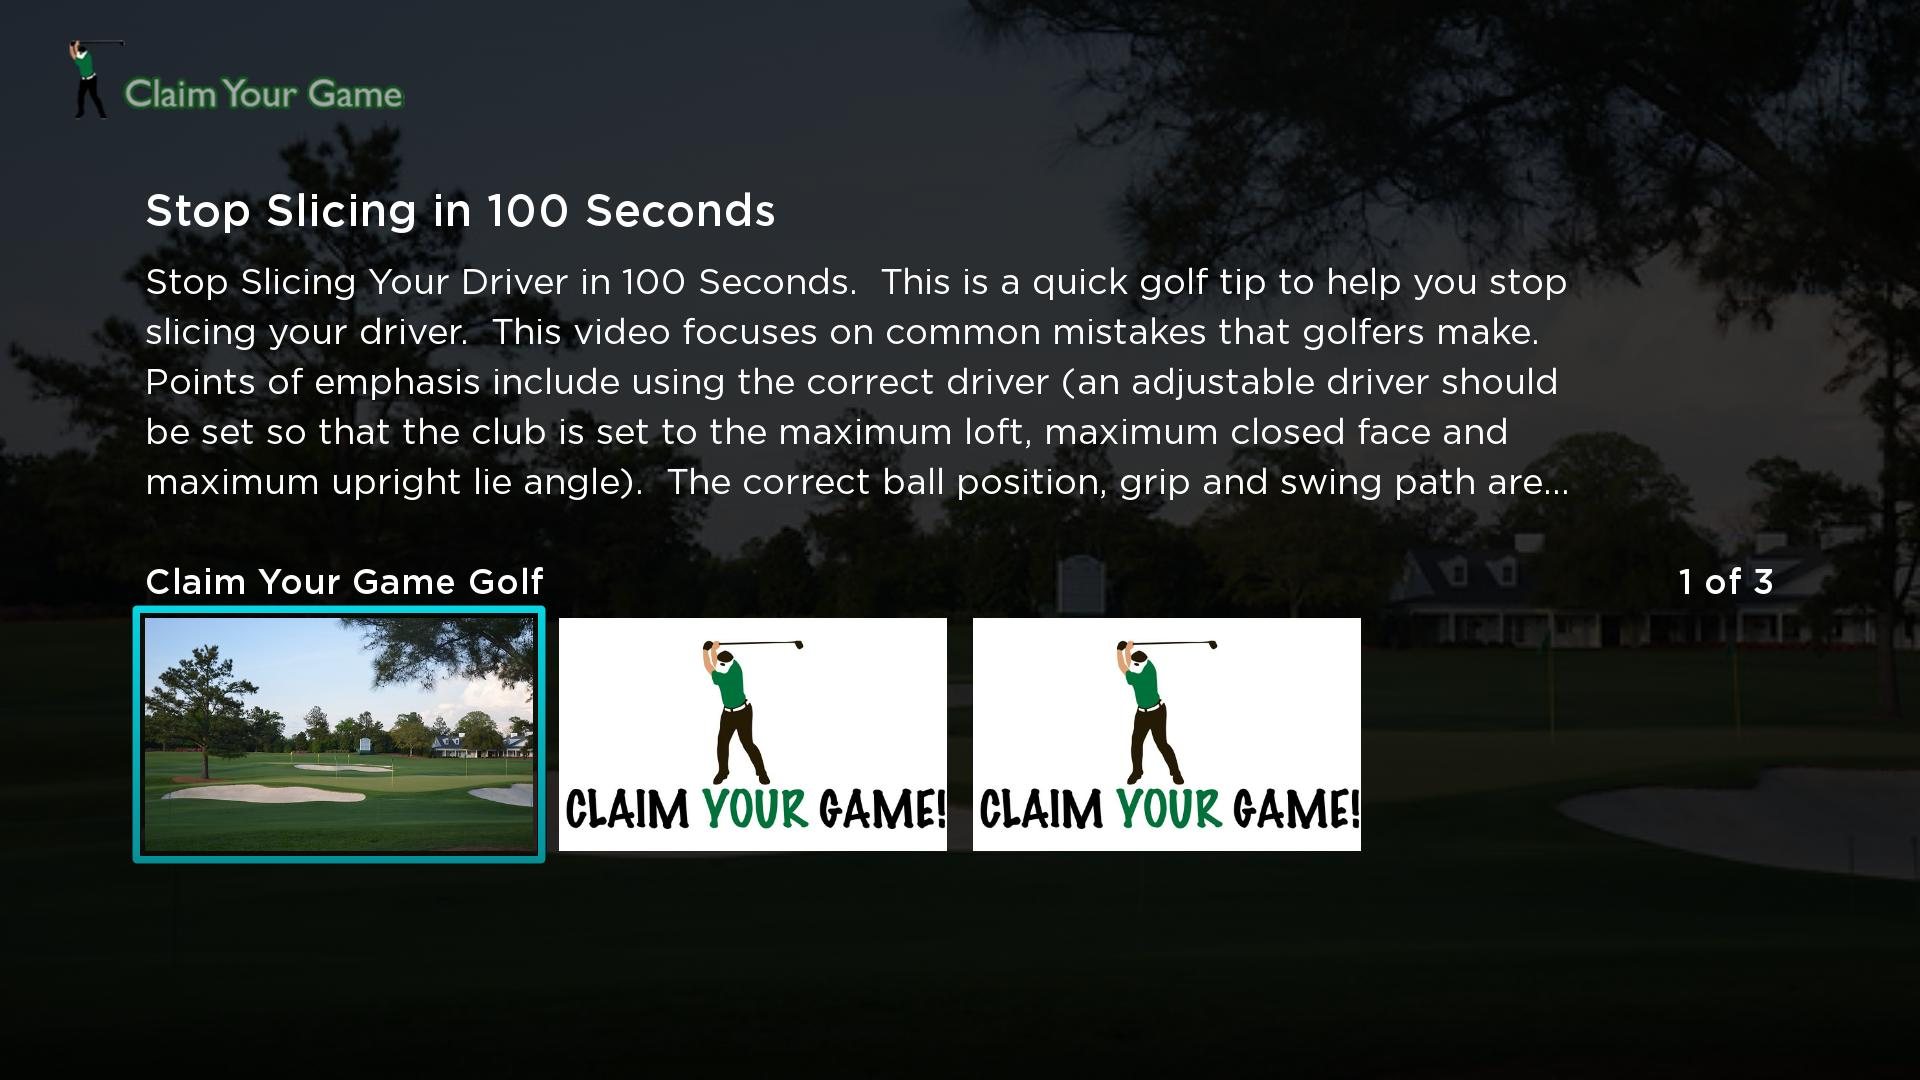 Claim Your Game Golf Screenshot 001